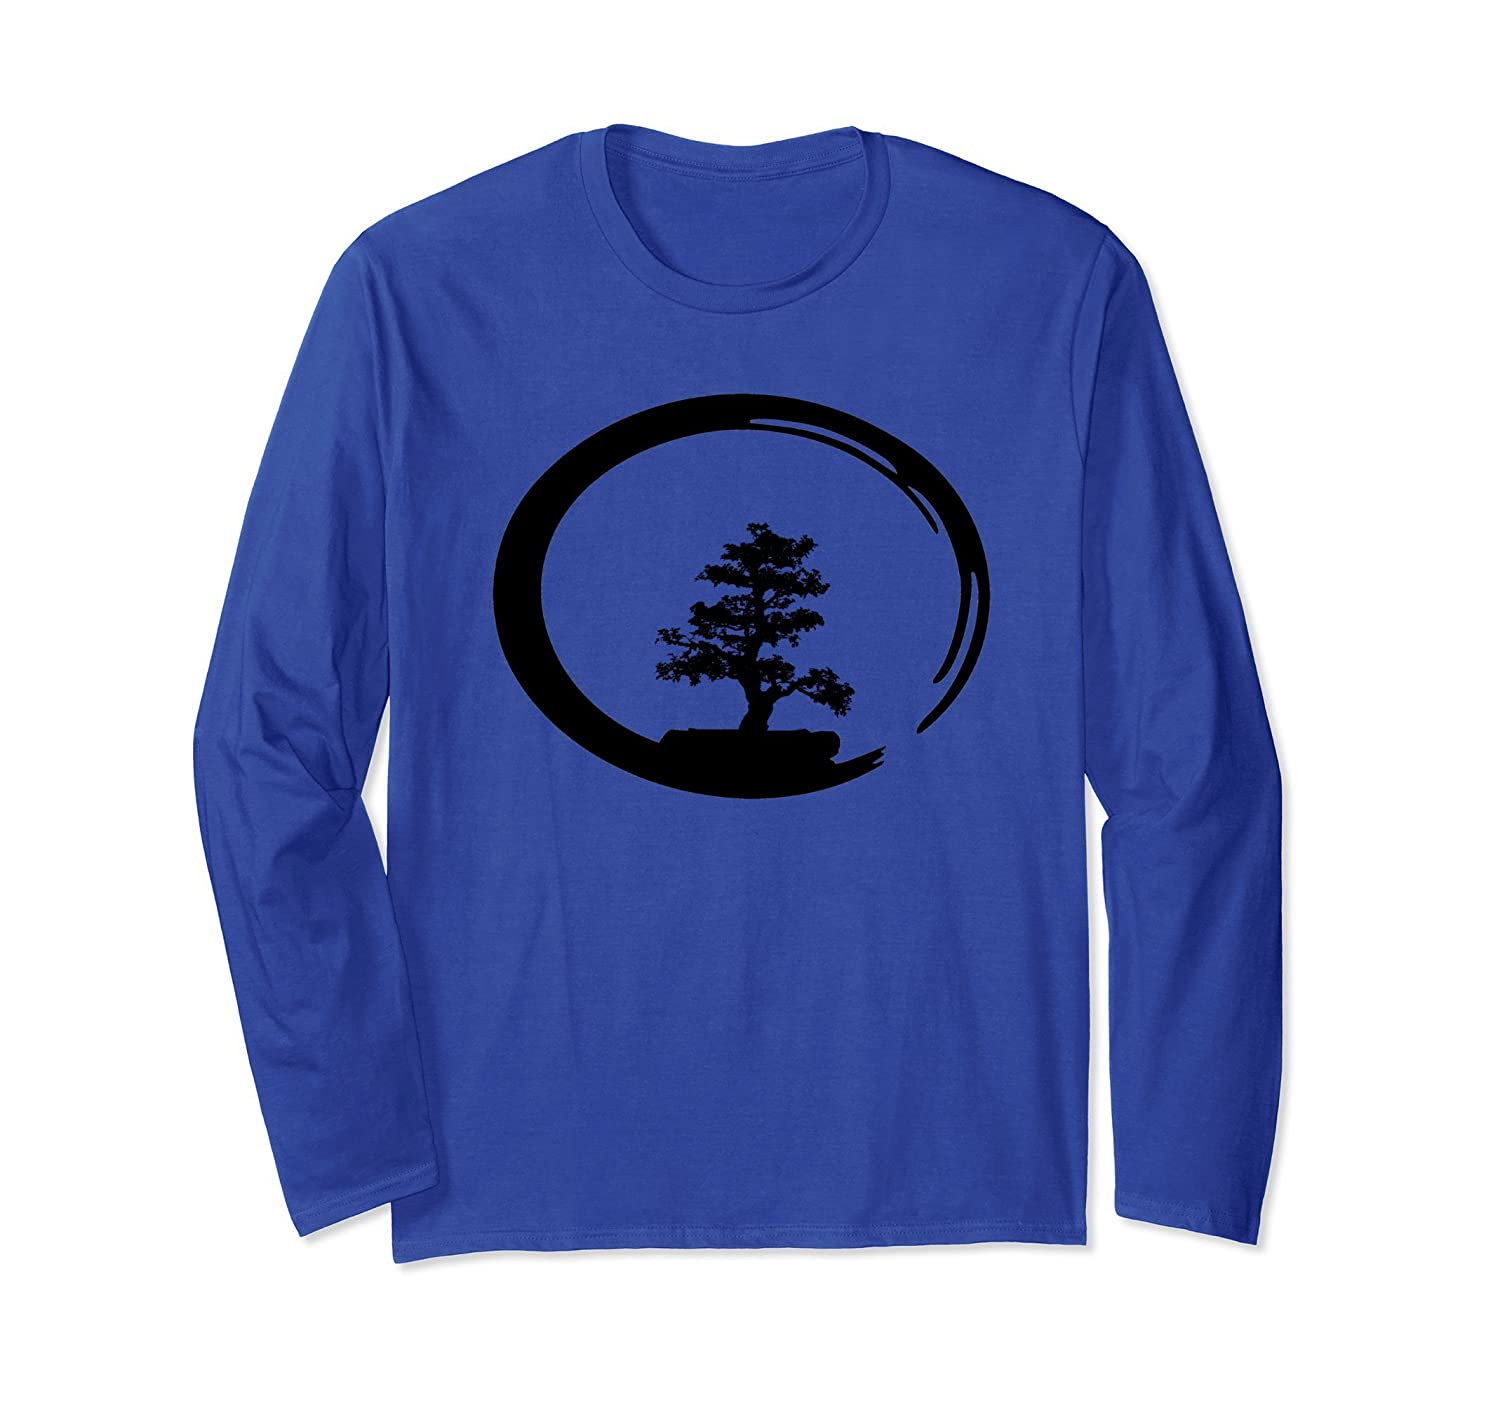 Yoga Bonsai Meditation Long Sleeve Tshirt-ah my shirt one gift